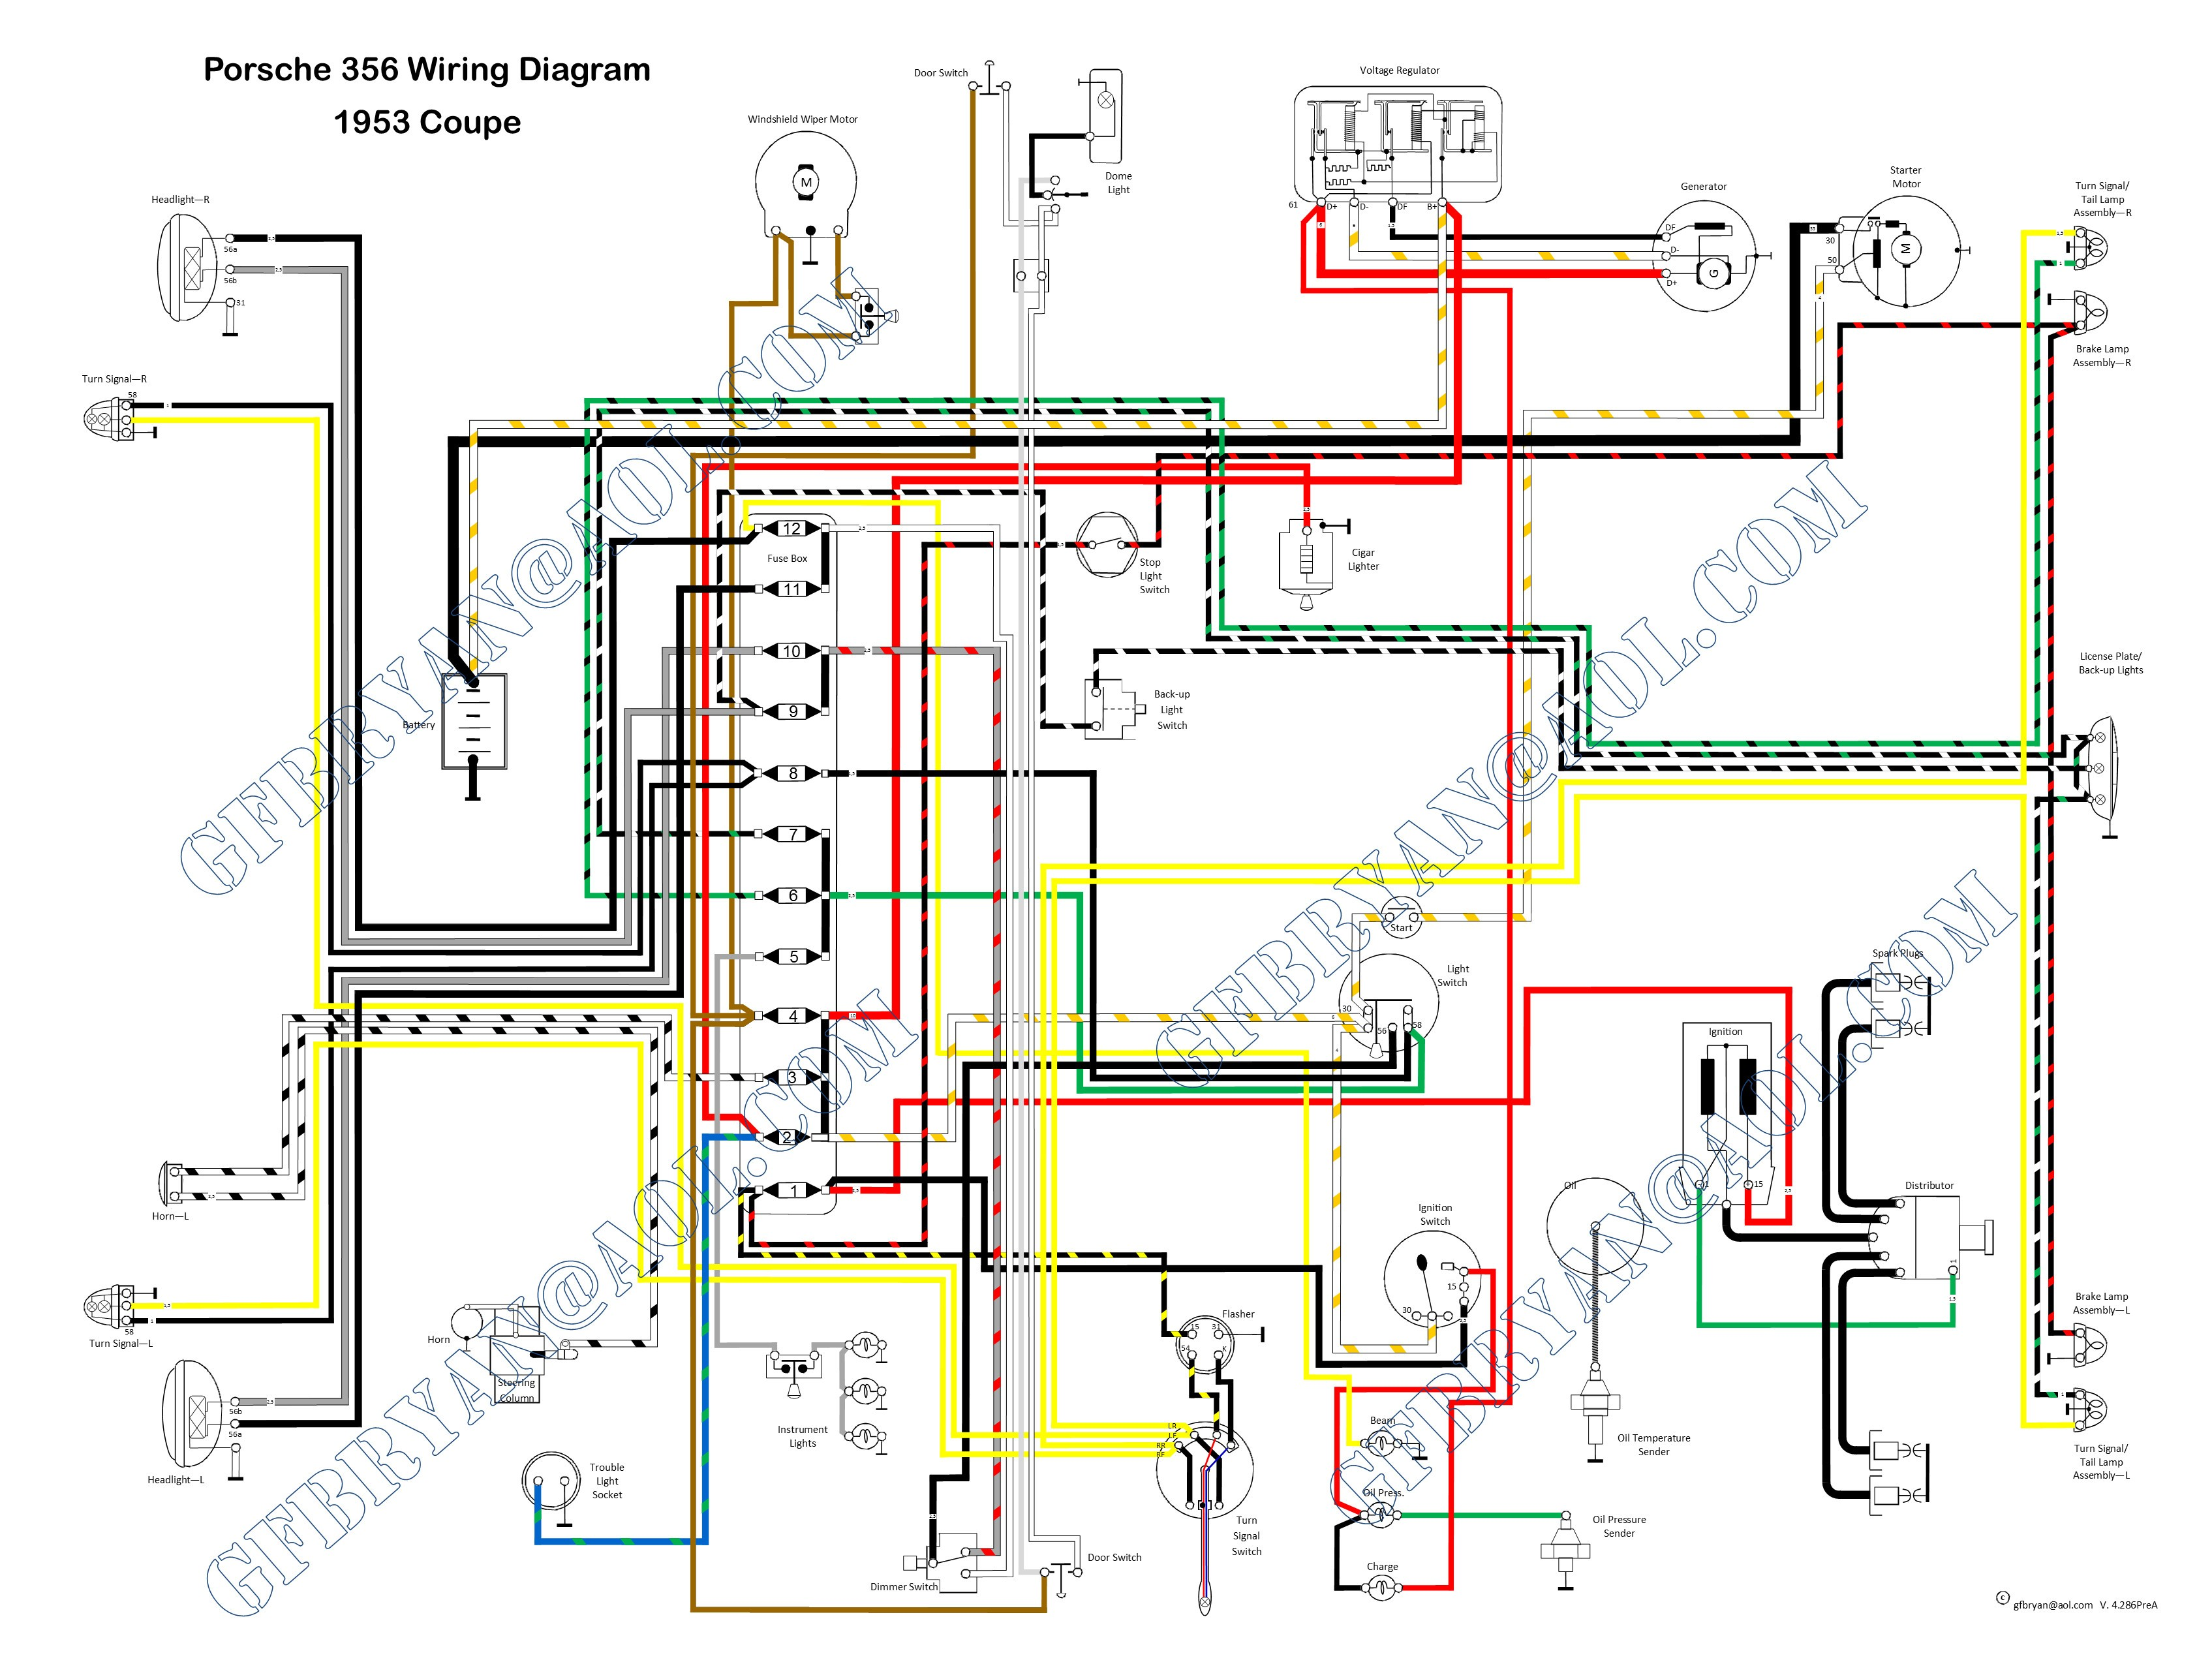 Lighting Contactor with Photocell Ys 1079] How Do I Wire A Cell Switch Free Diagram Of Lighting Contactor with Photocell